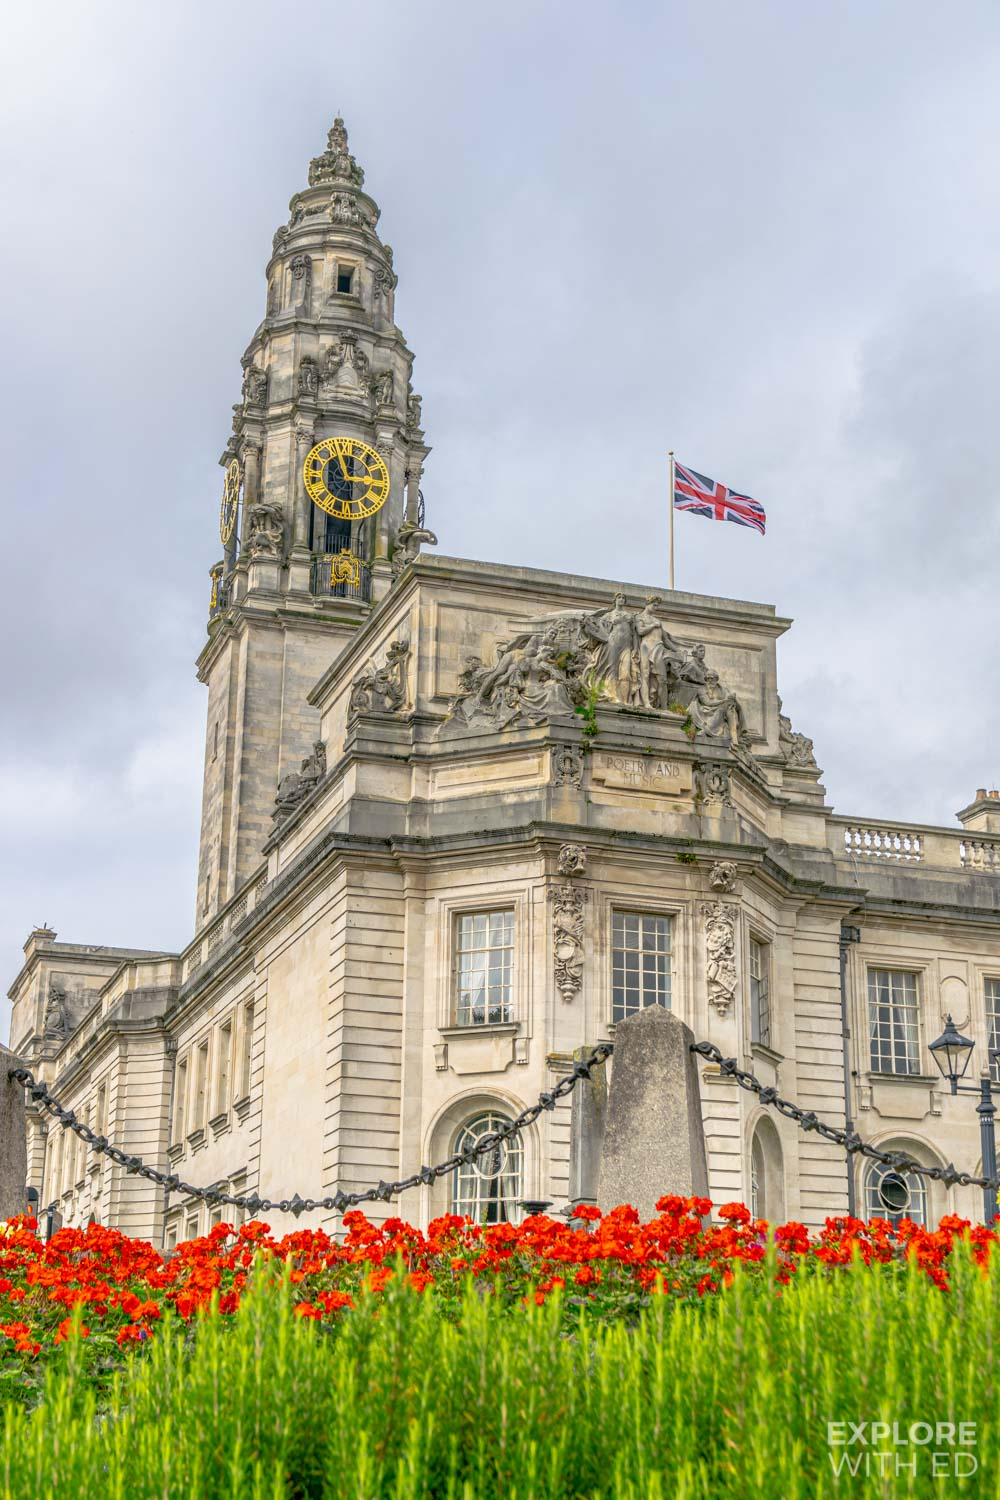 Cardiff Council, Museum buildings and Clock Tower